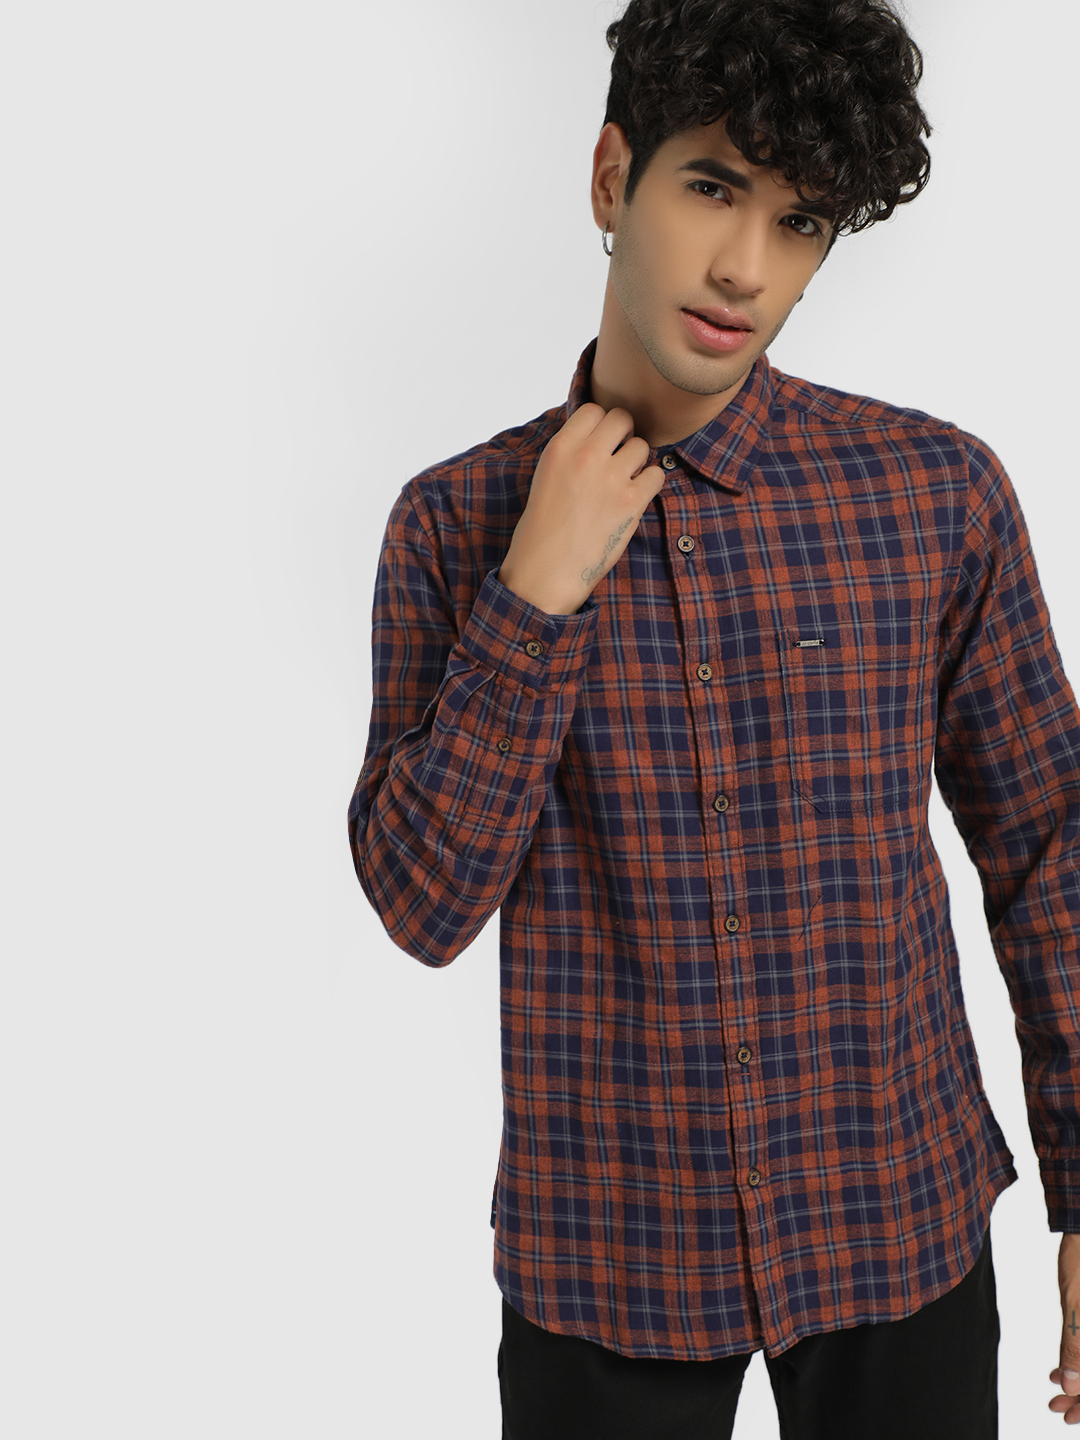 Lee Cooper Brown Woven Multi-Check Shirt 1